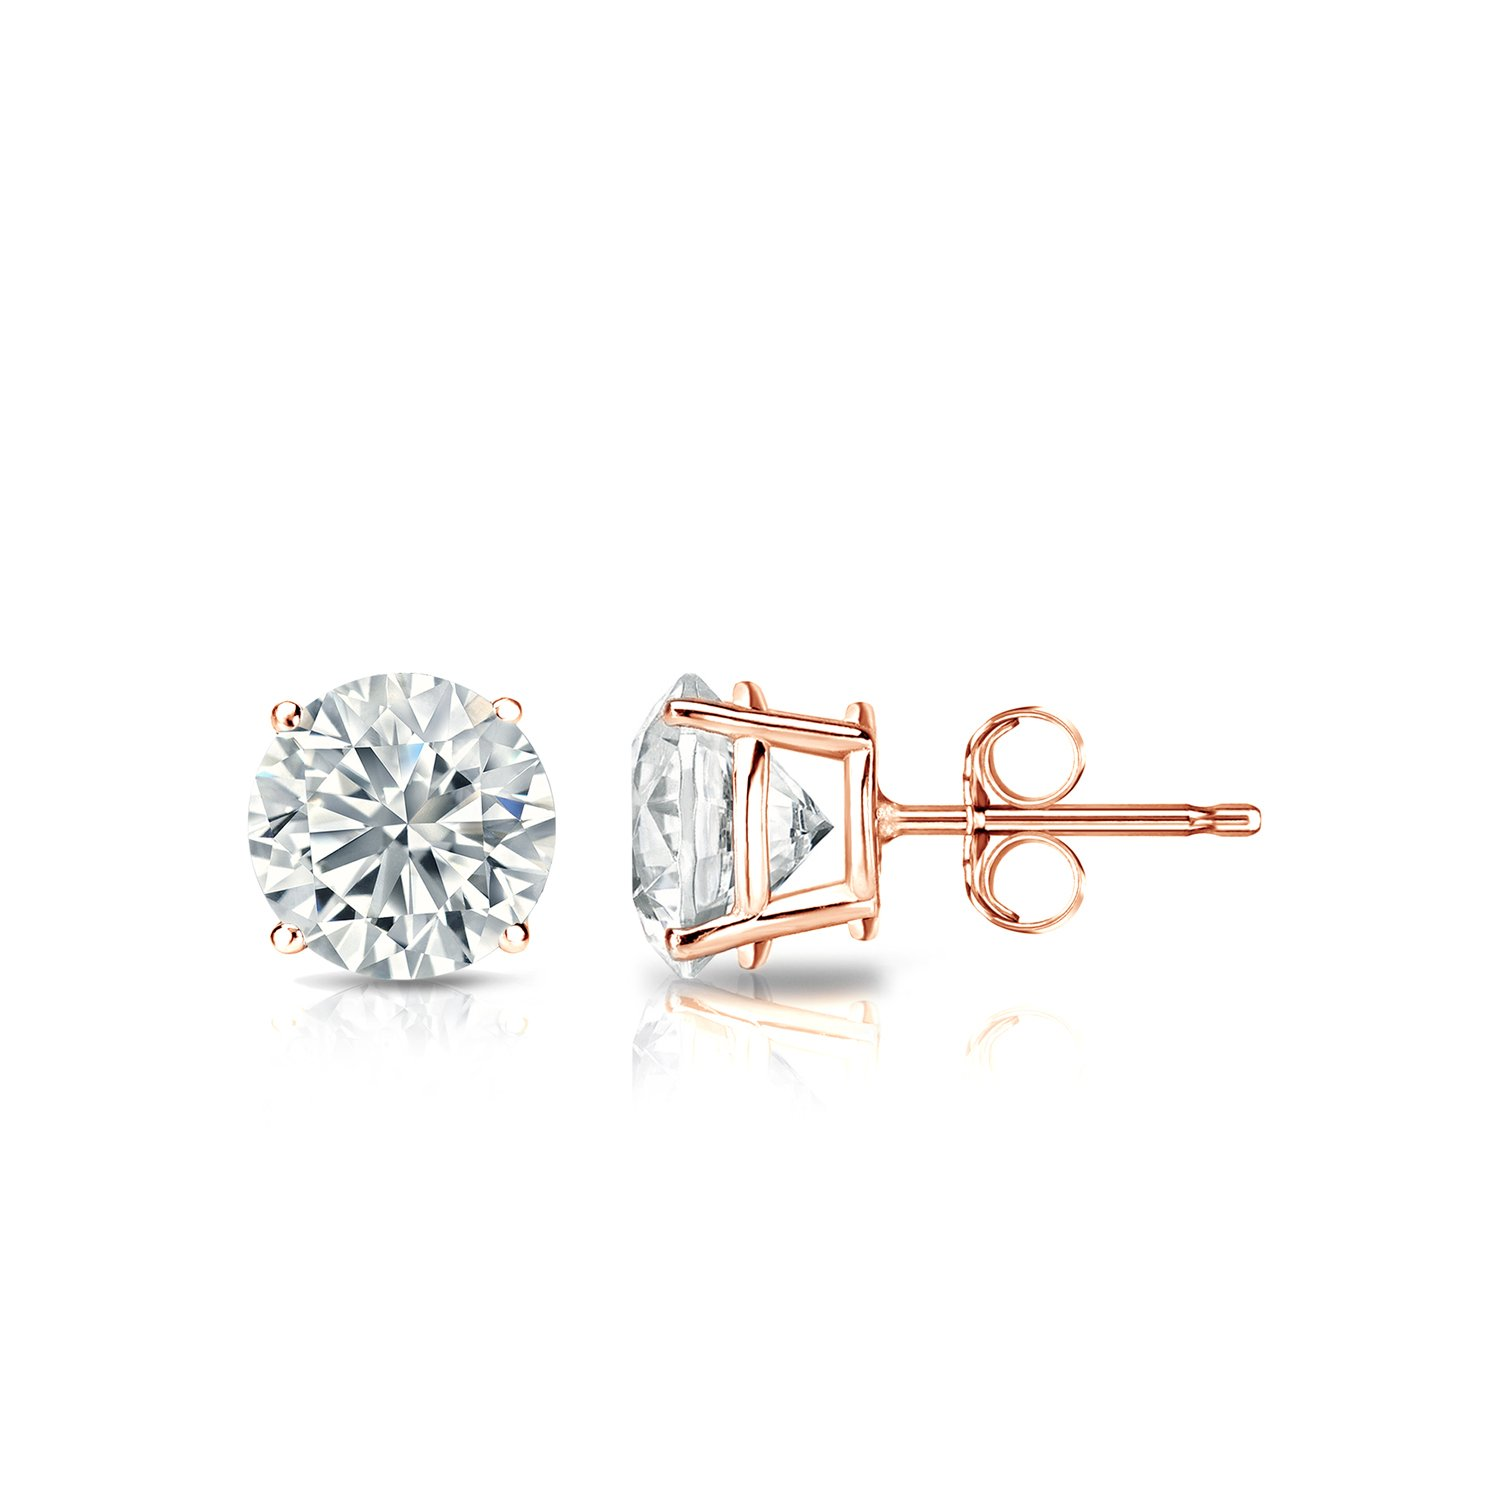 gold bluejewels studs stud prong diamondwomensstuds white diamond earring pin ct